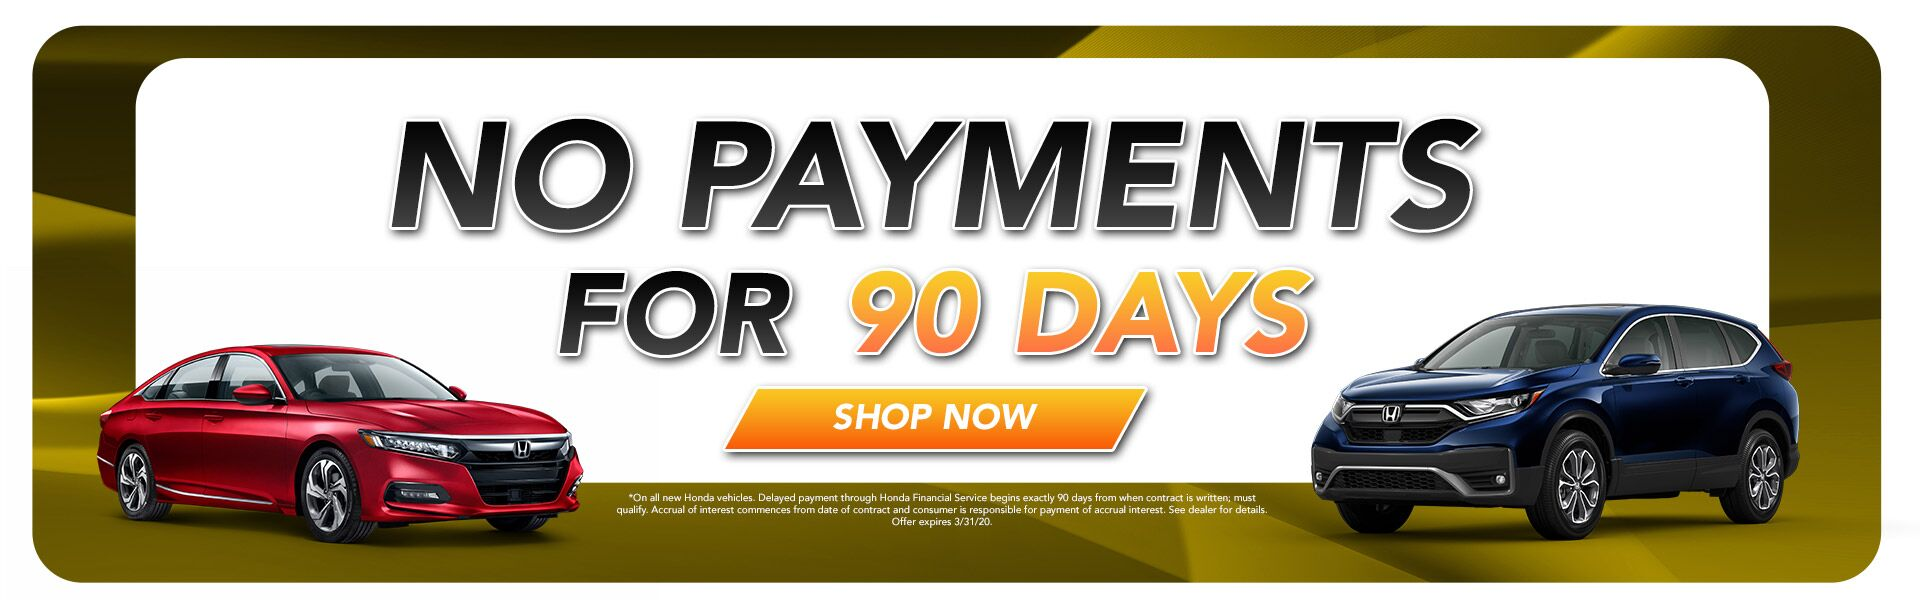 90 dayno payment